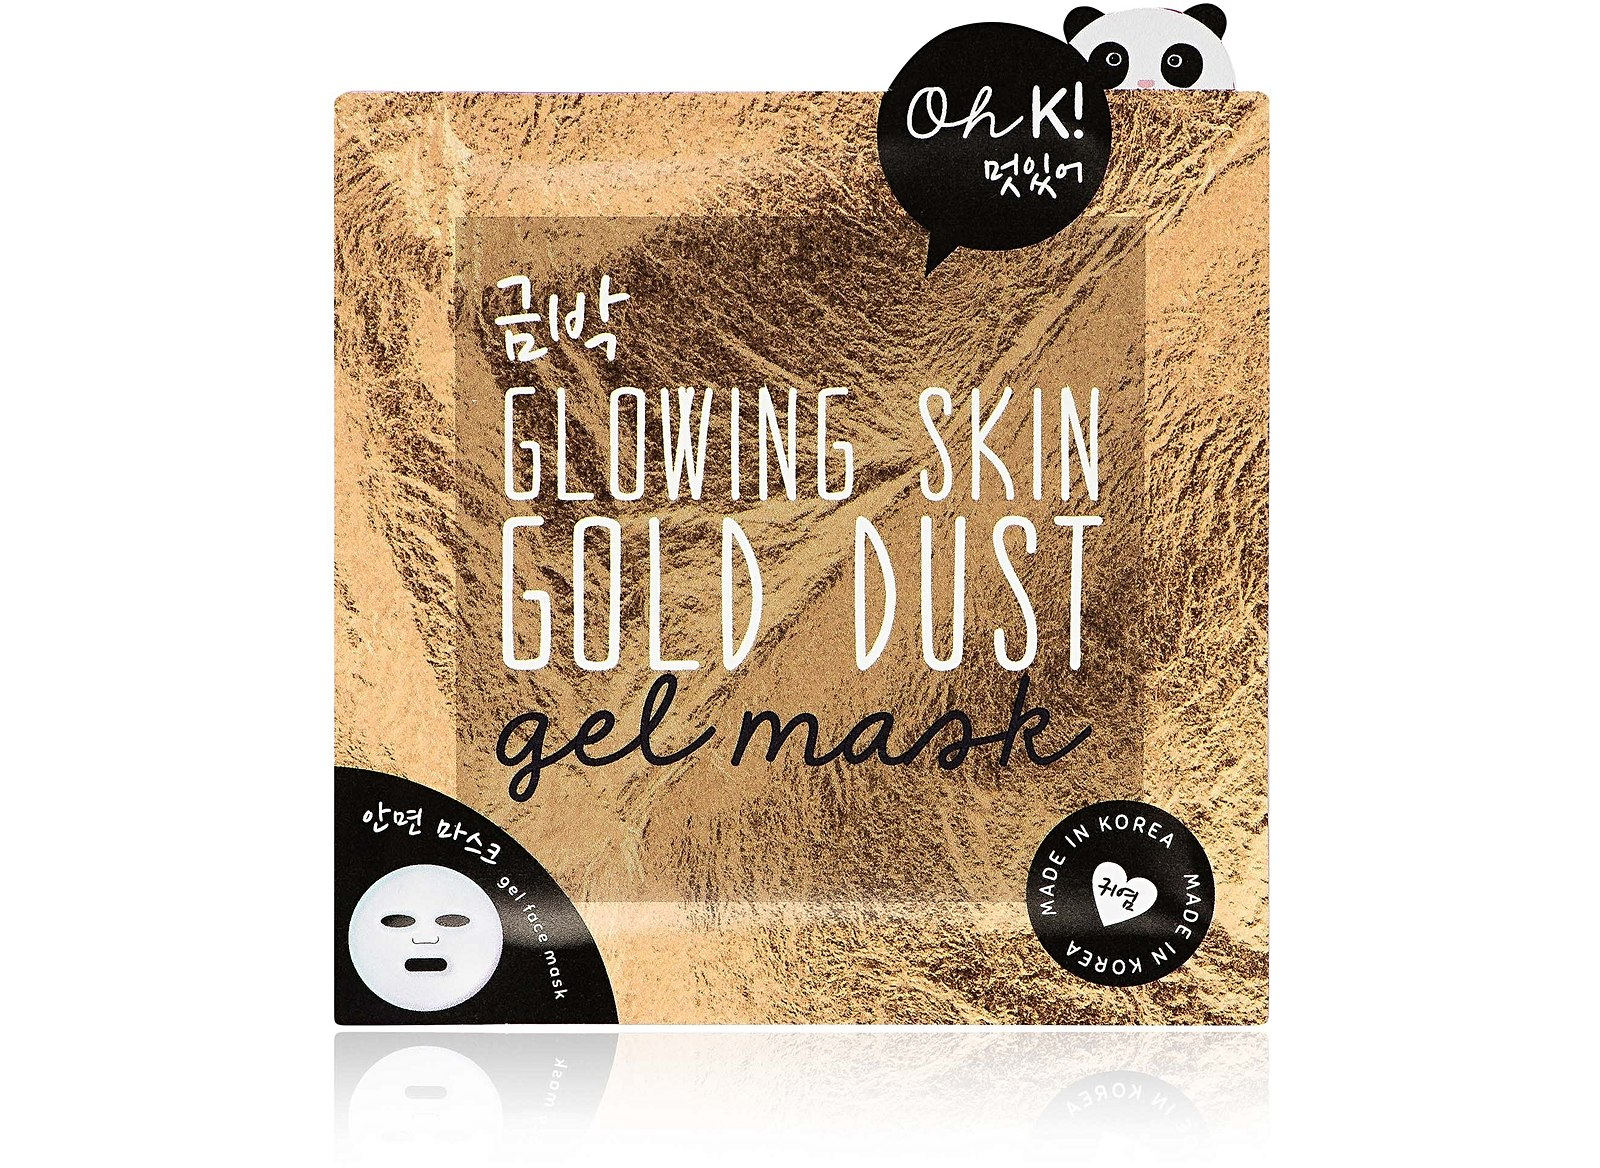 Oh K! Gold Dusk Gel Mask